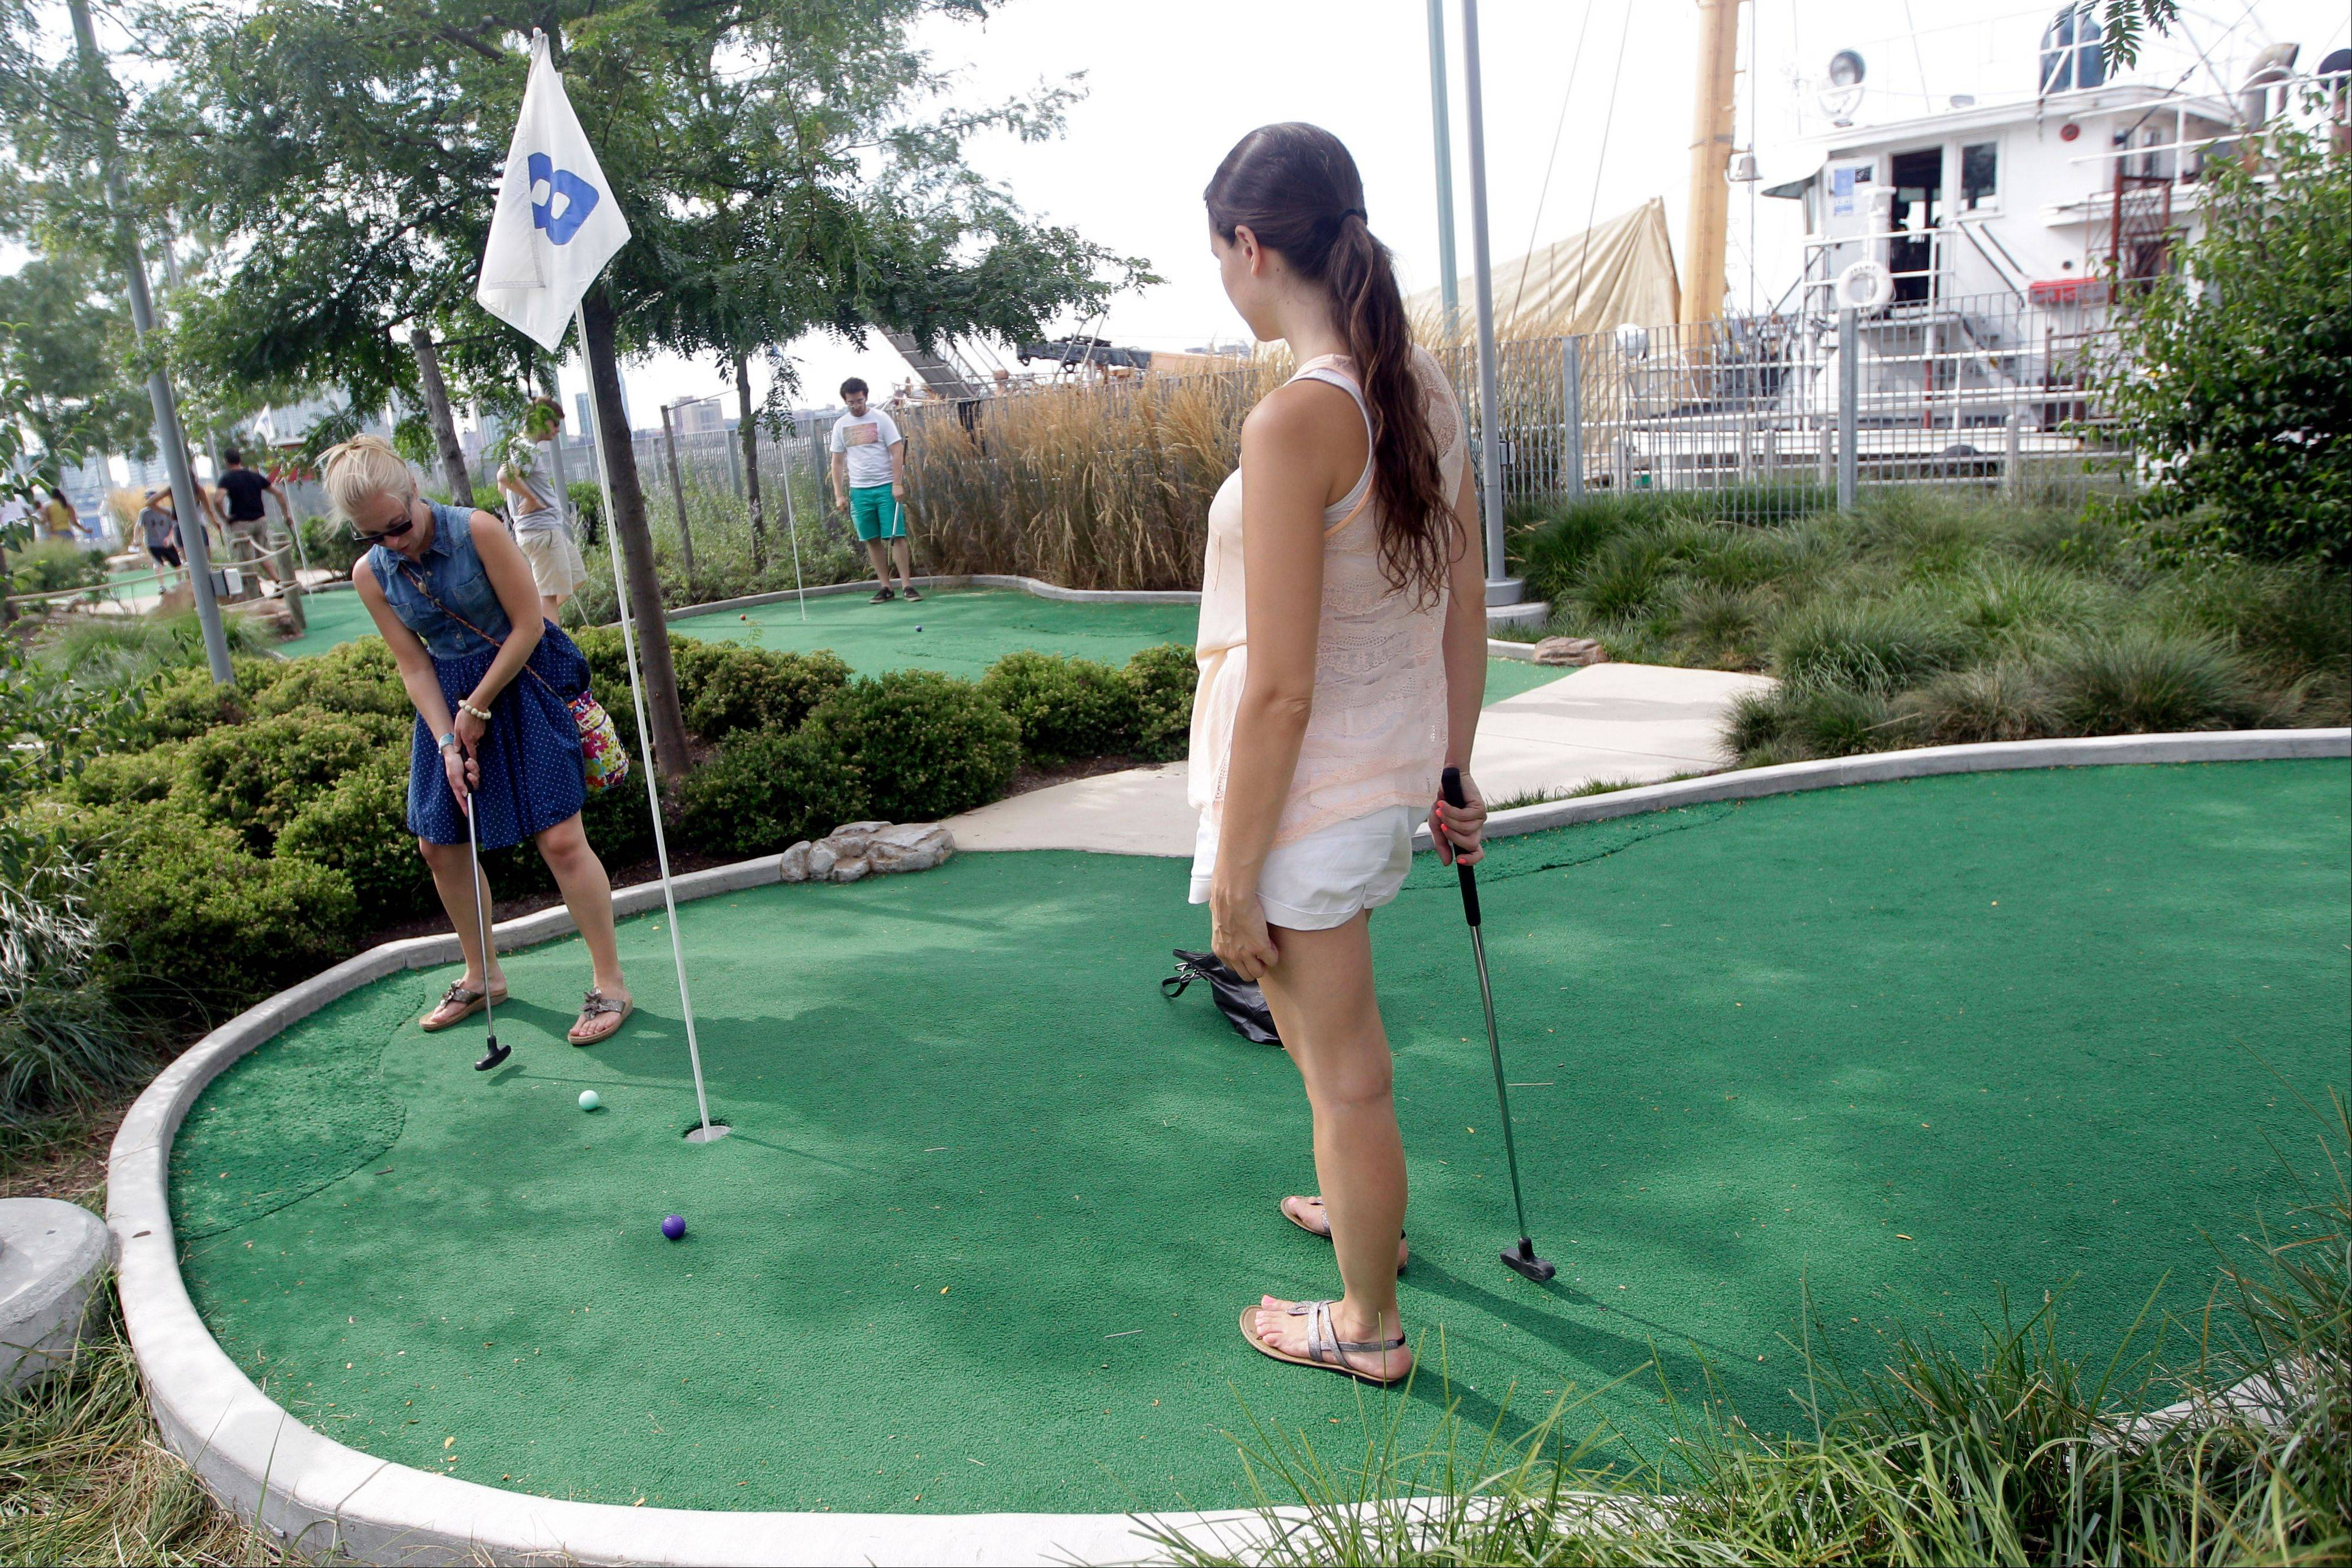 Visitors to the Hudson River Park in New York play miniature golf.